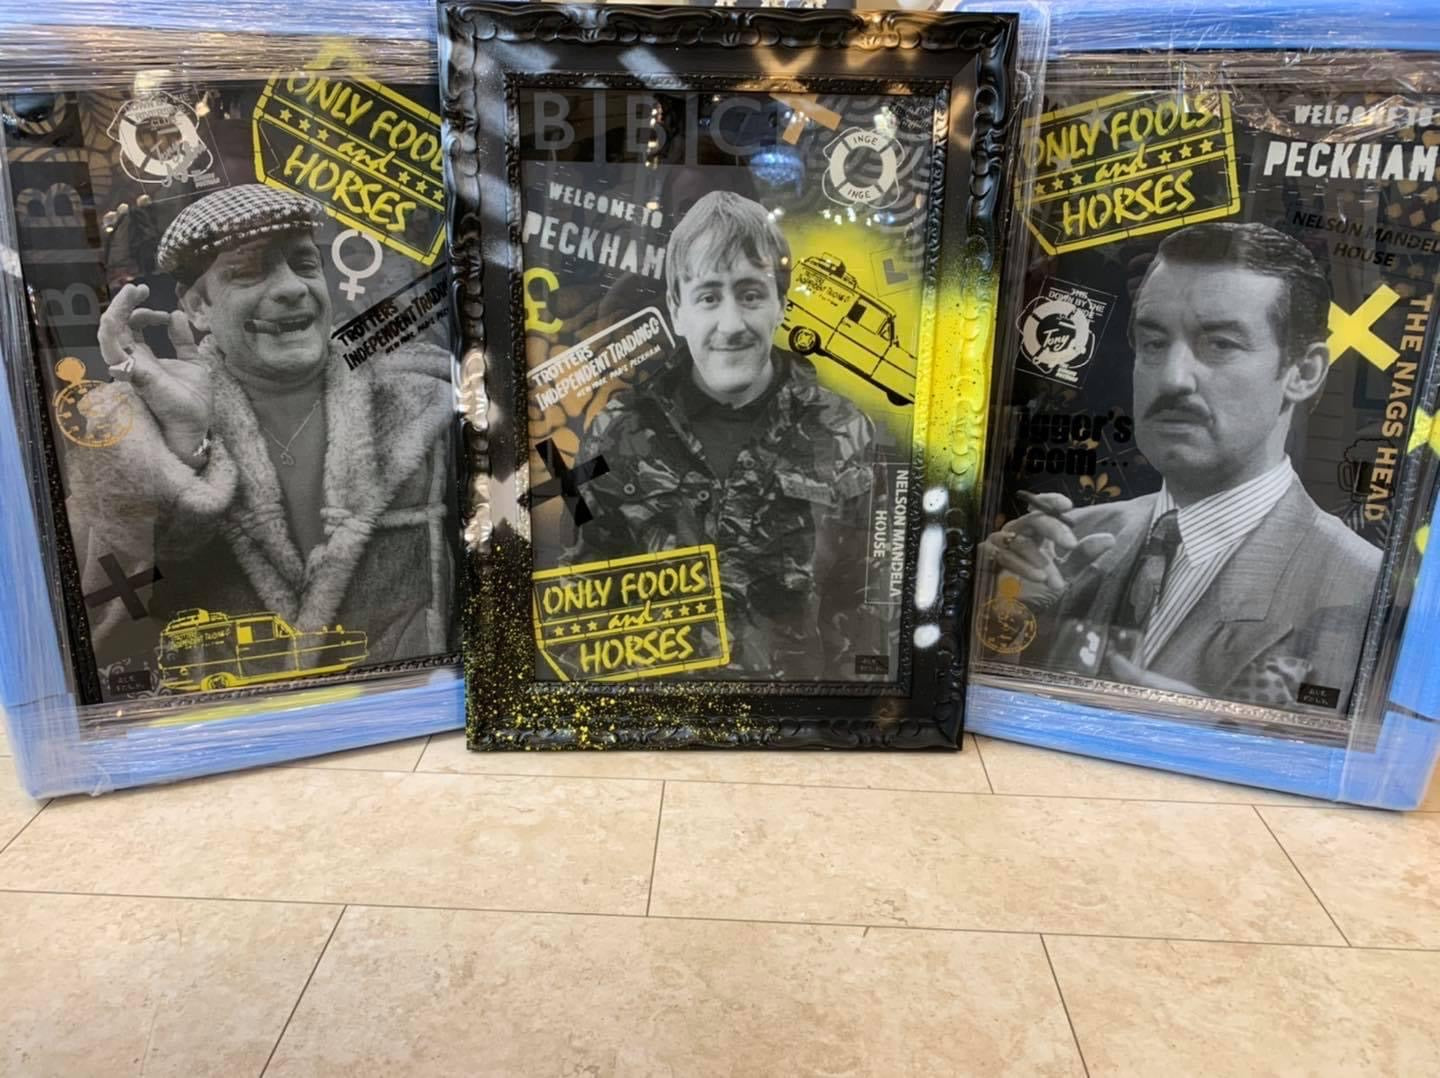 Hue Folk 'Only Fools & Horses' Original Artwork